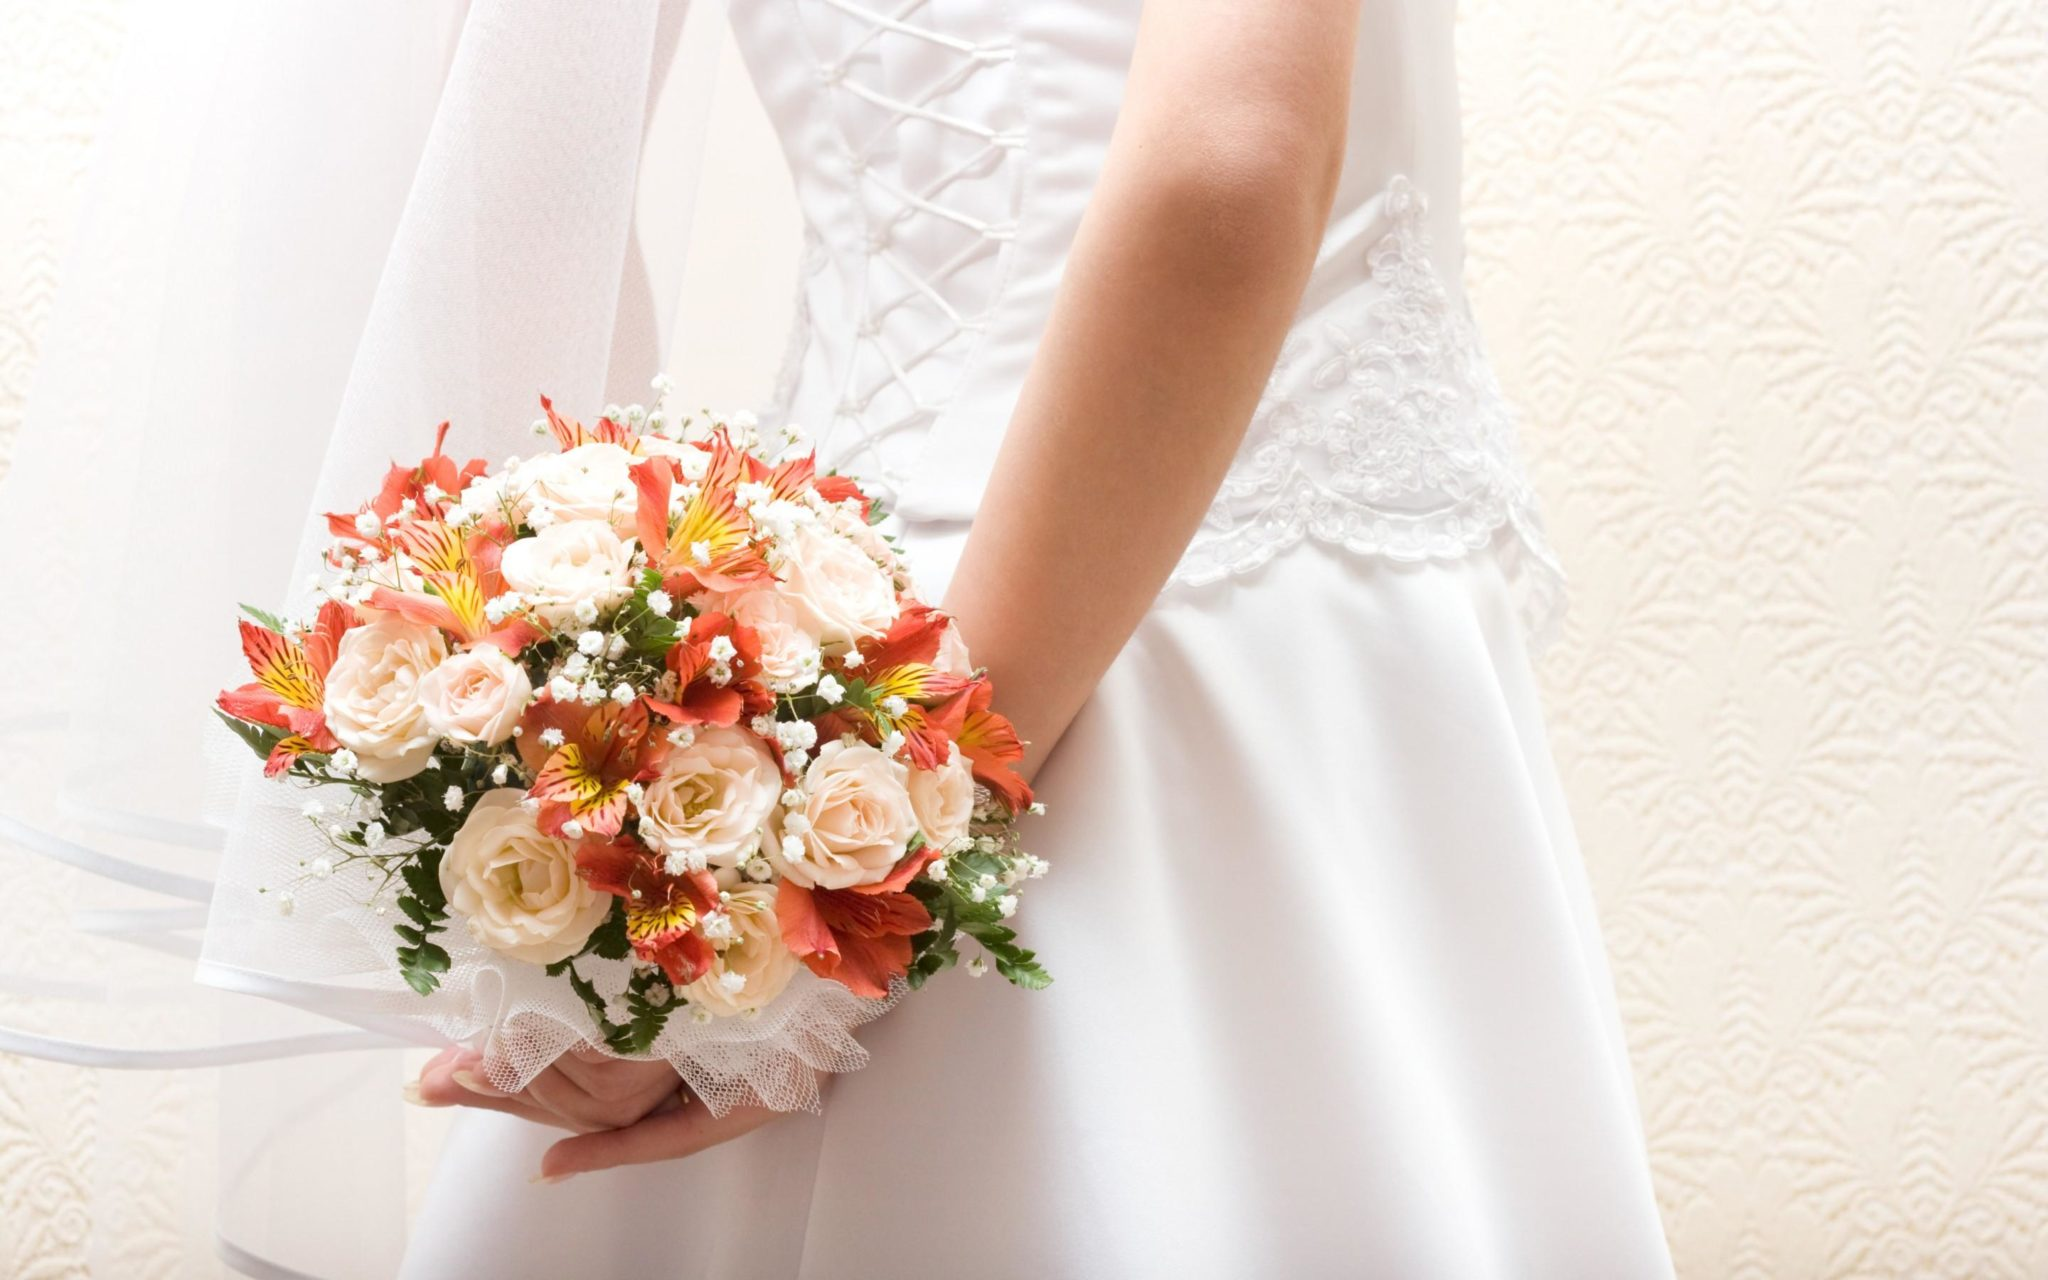 picture of a pride with flower bouquet in her hands held behind her back